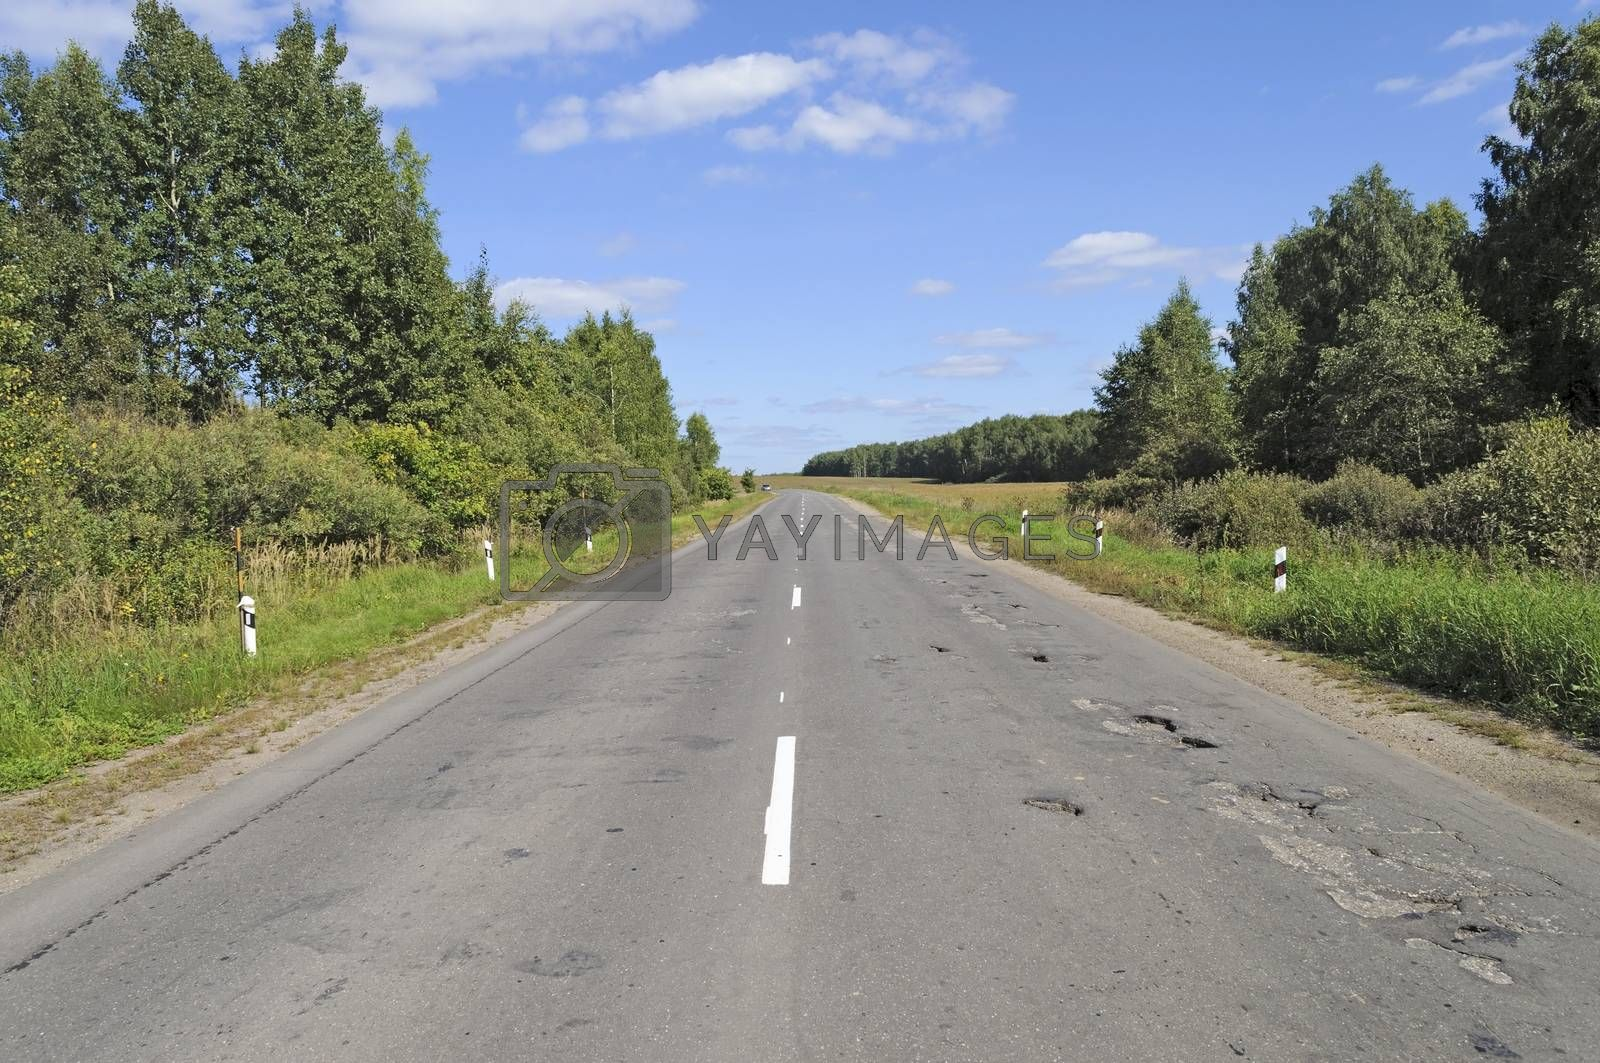 Asphalt road in the country with potholes